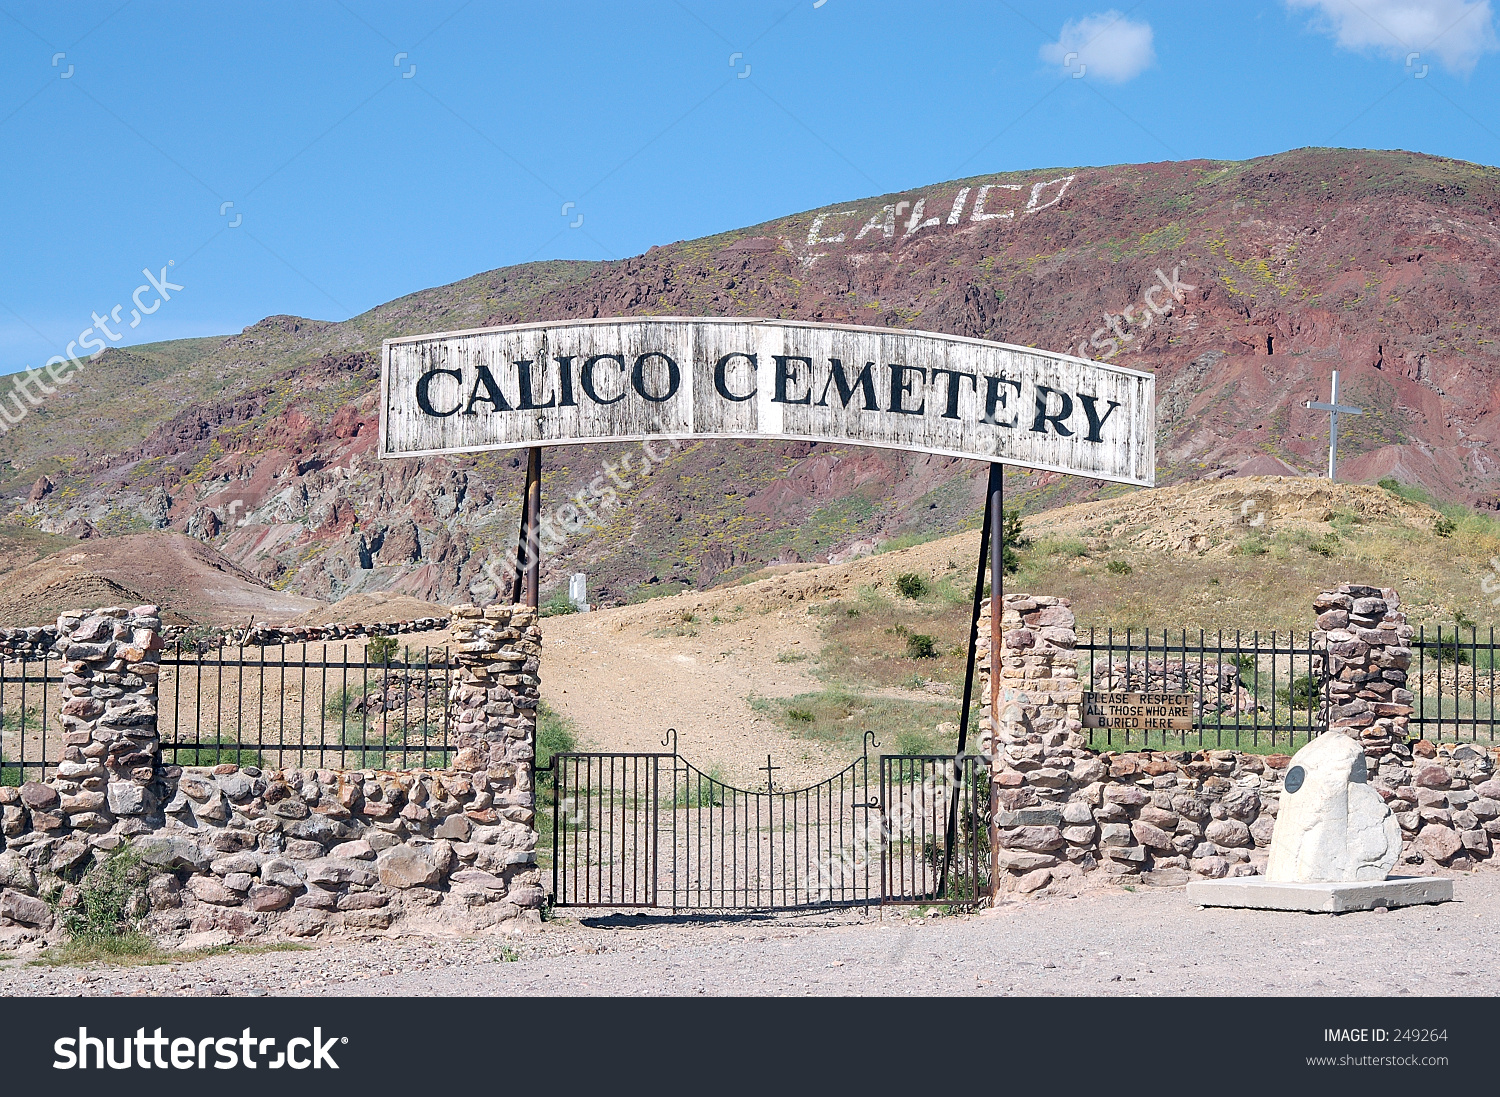 Entrance Calico Ghost Town Cemetery 1890s Stock Photo 249264.